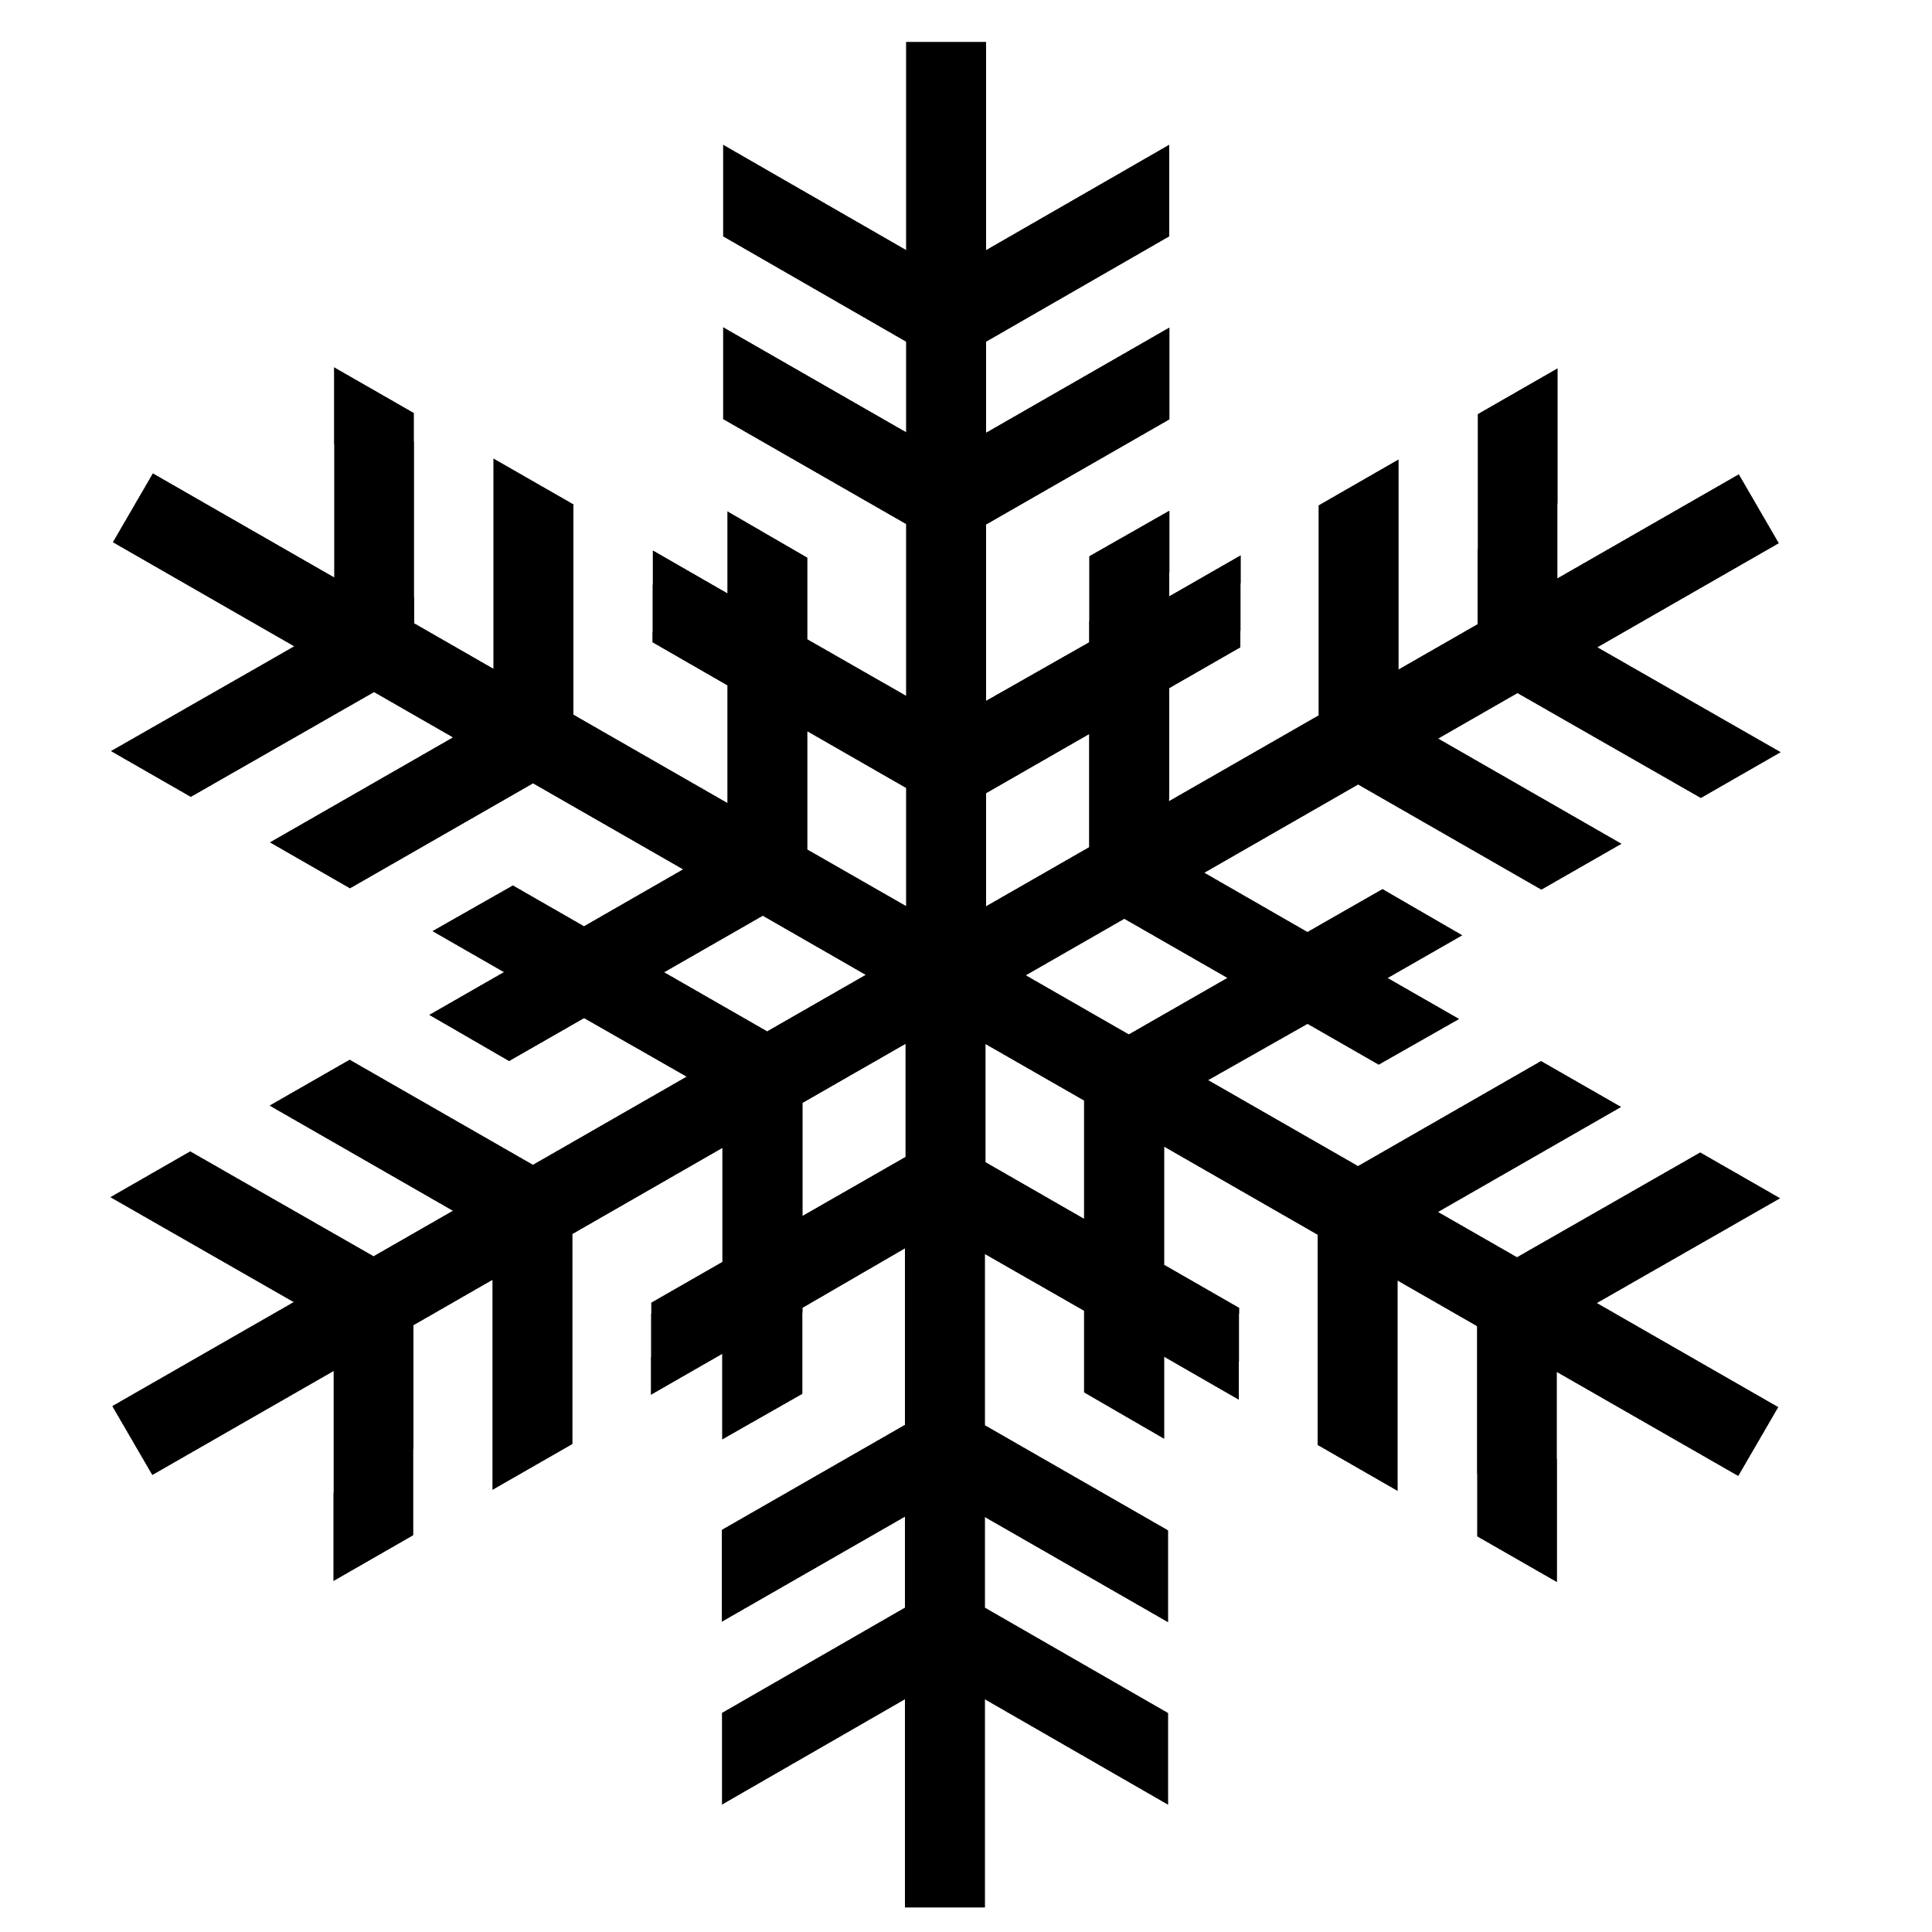 Snowflake Silhouette - ClipArt Best